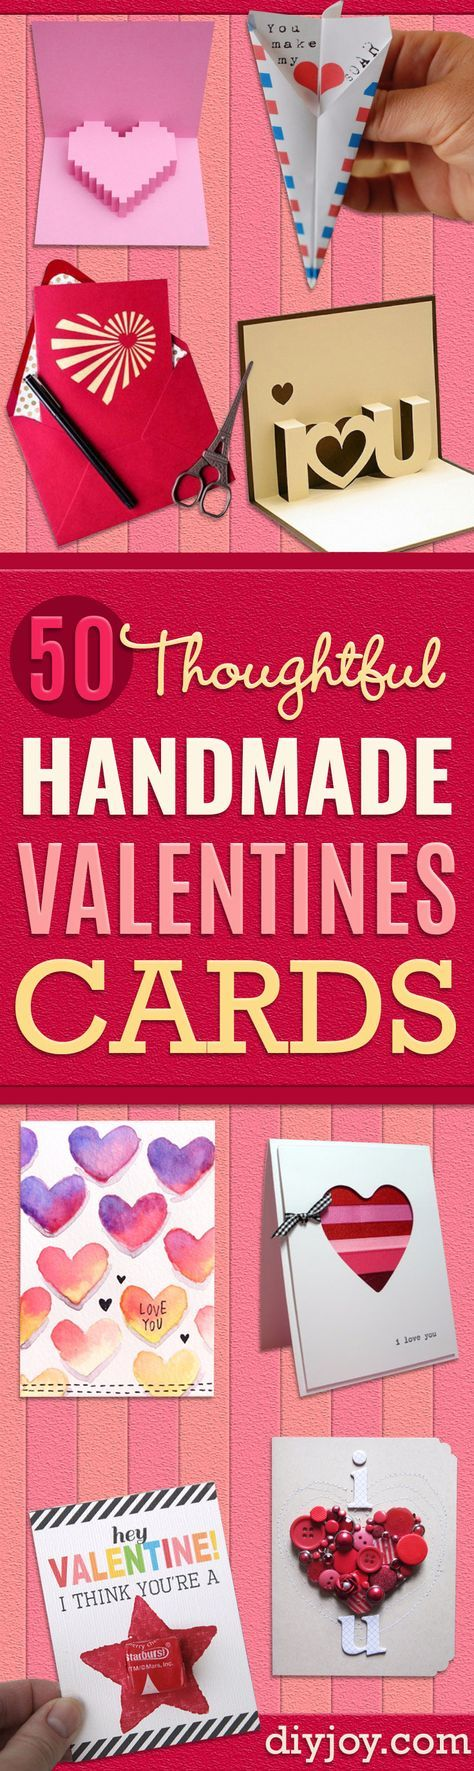 Best 25 Cute Valentines Day Cards ideas – Cute Valentine Cards Ideas